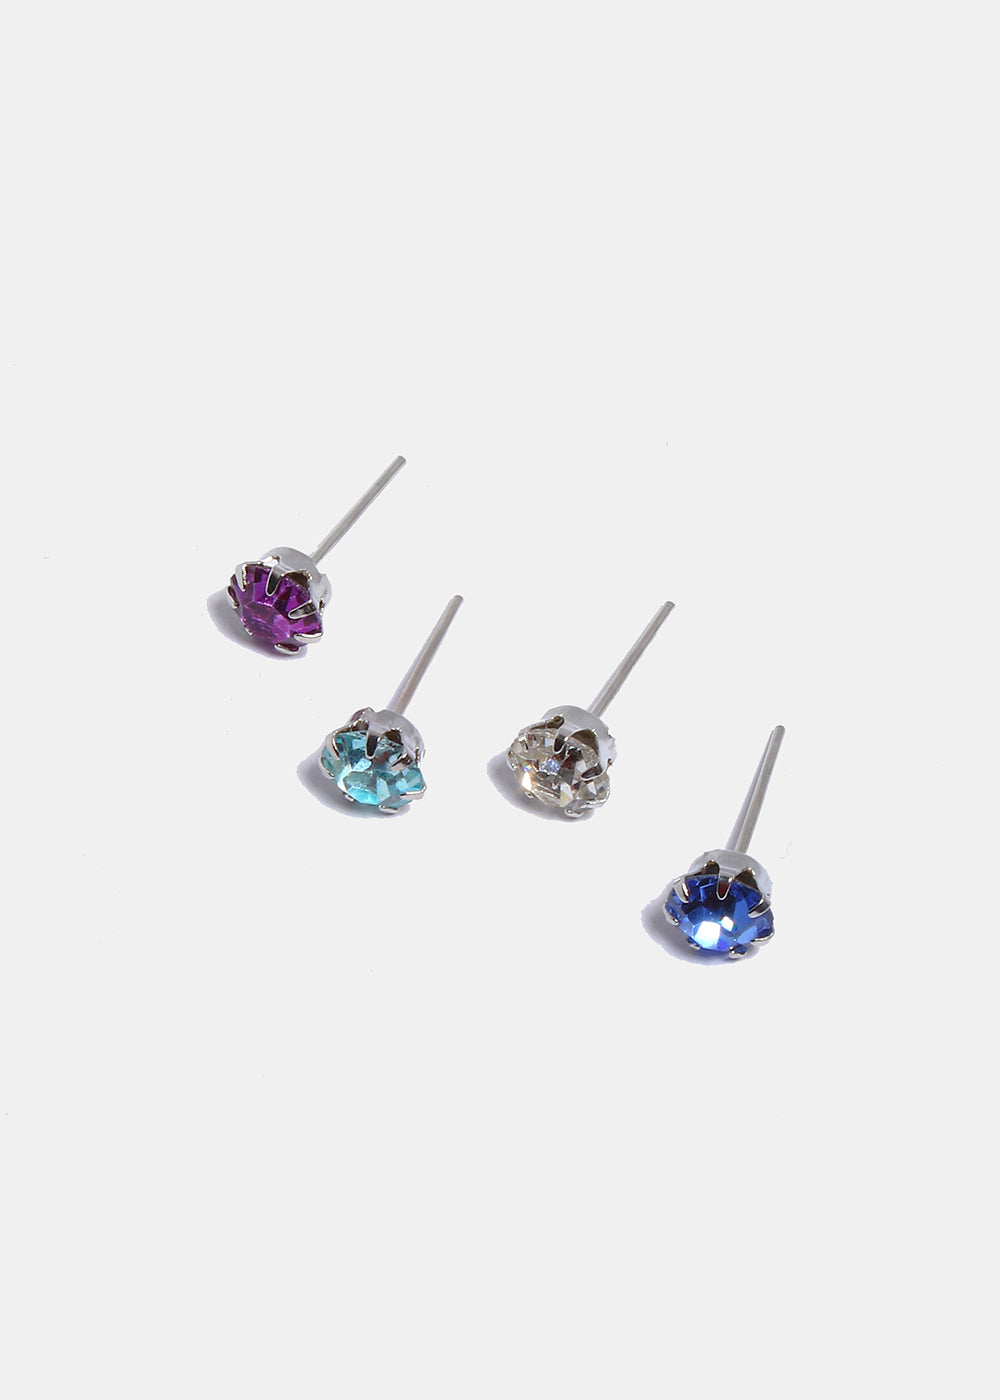 12 Pair Birthstone Stud Set